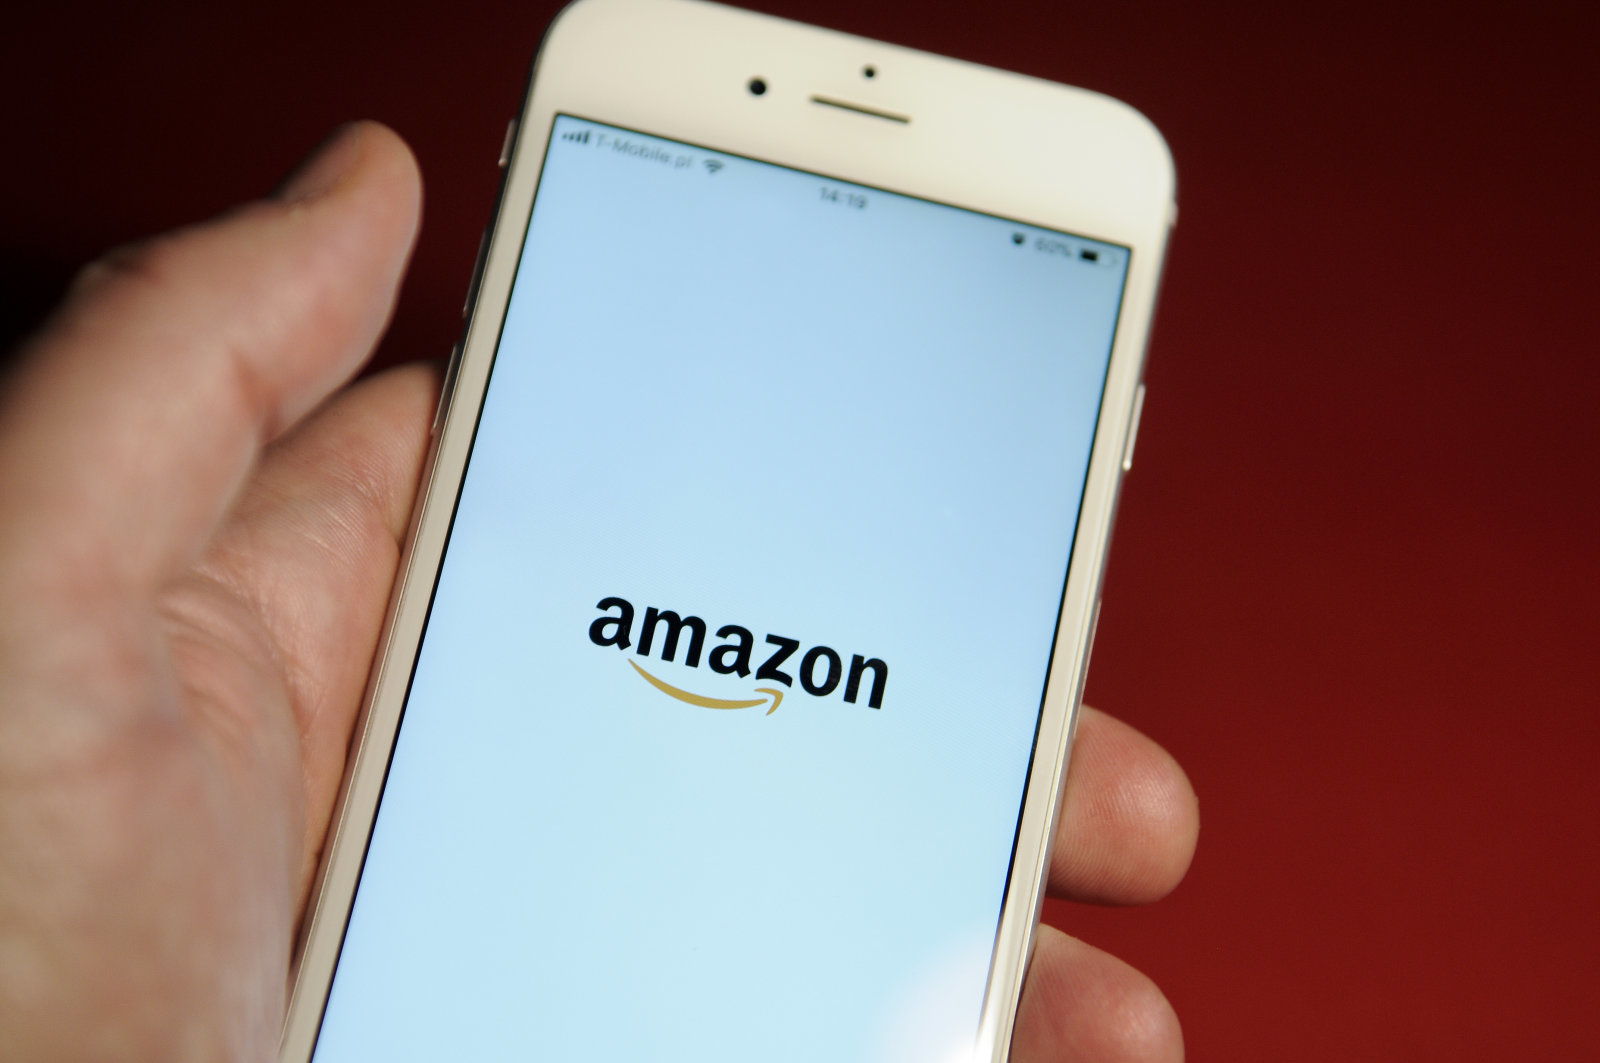 The Amazon application startup screen is seen on an iPhone on October 25, 2017. (Photo by Jaap Arriens/NurPhoto via Getty Images)